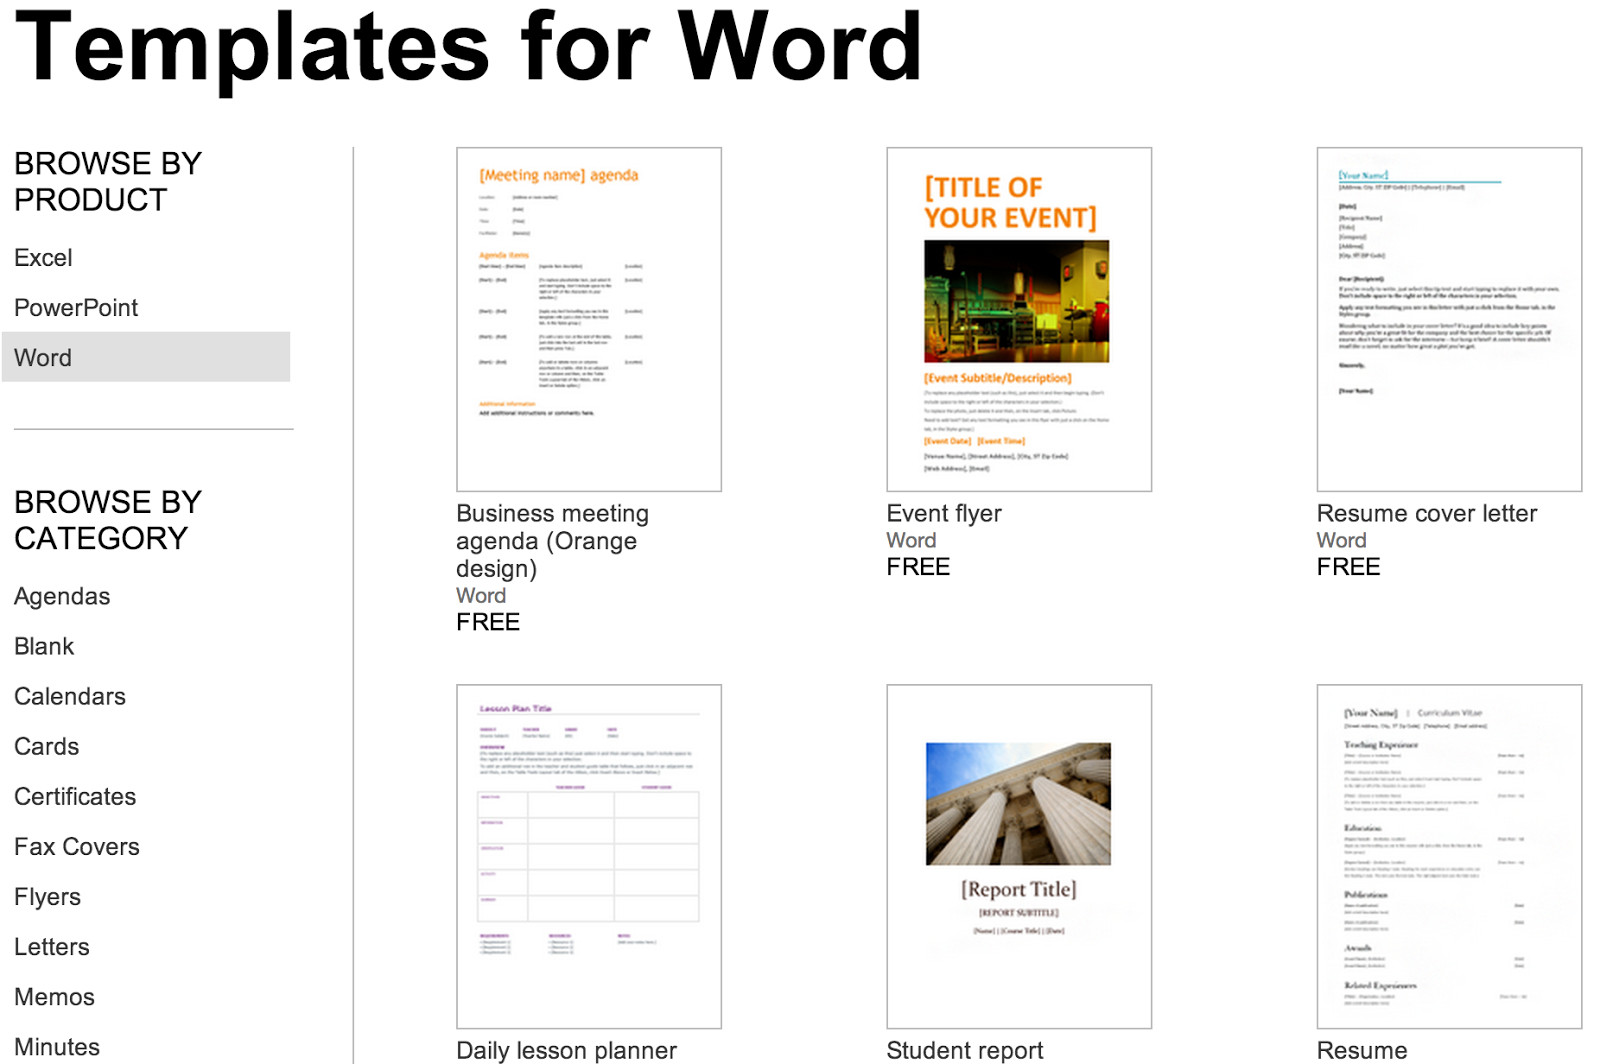 Over 250 Free Microsoft Office Templates & Documents with regard to How To Create A Book Template In Word